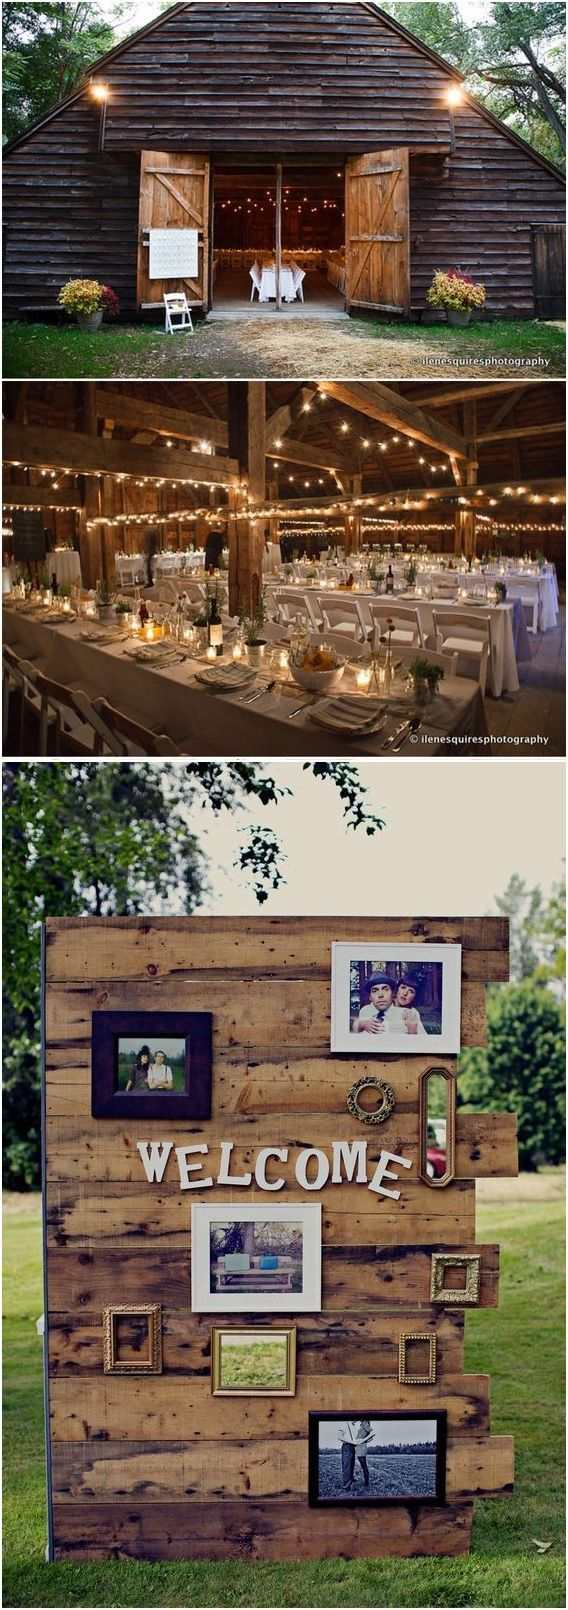 wedding reception at home ideas uk%0A rustic country wedding decor ideas   http   www deerpearlflowers com